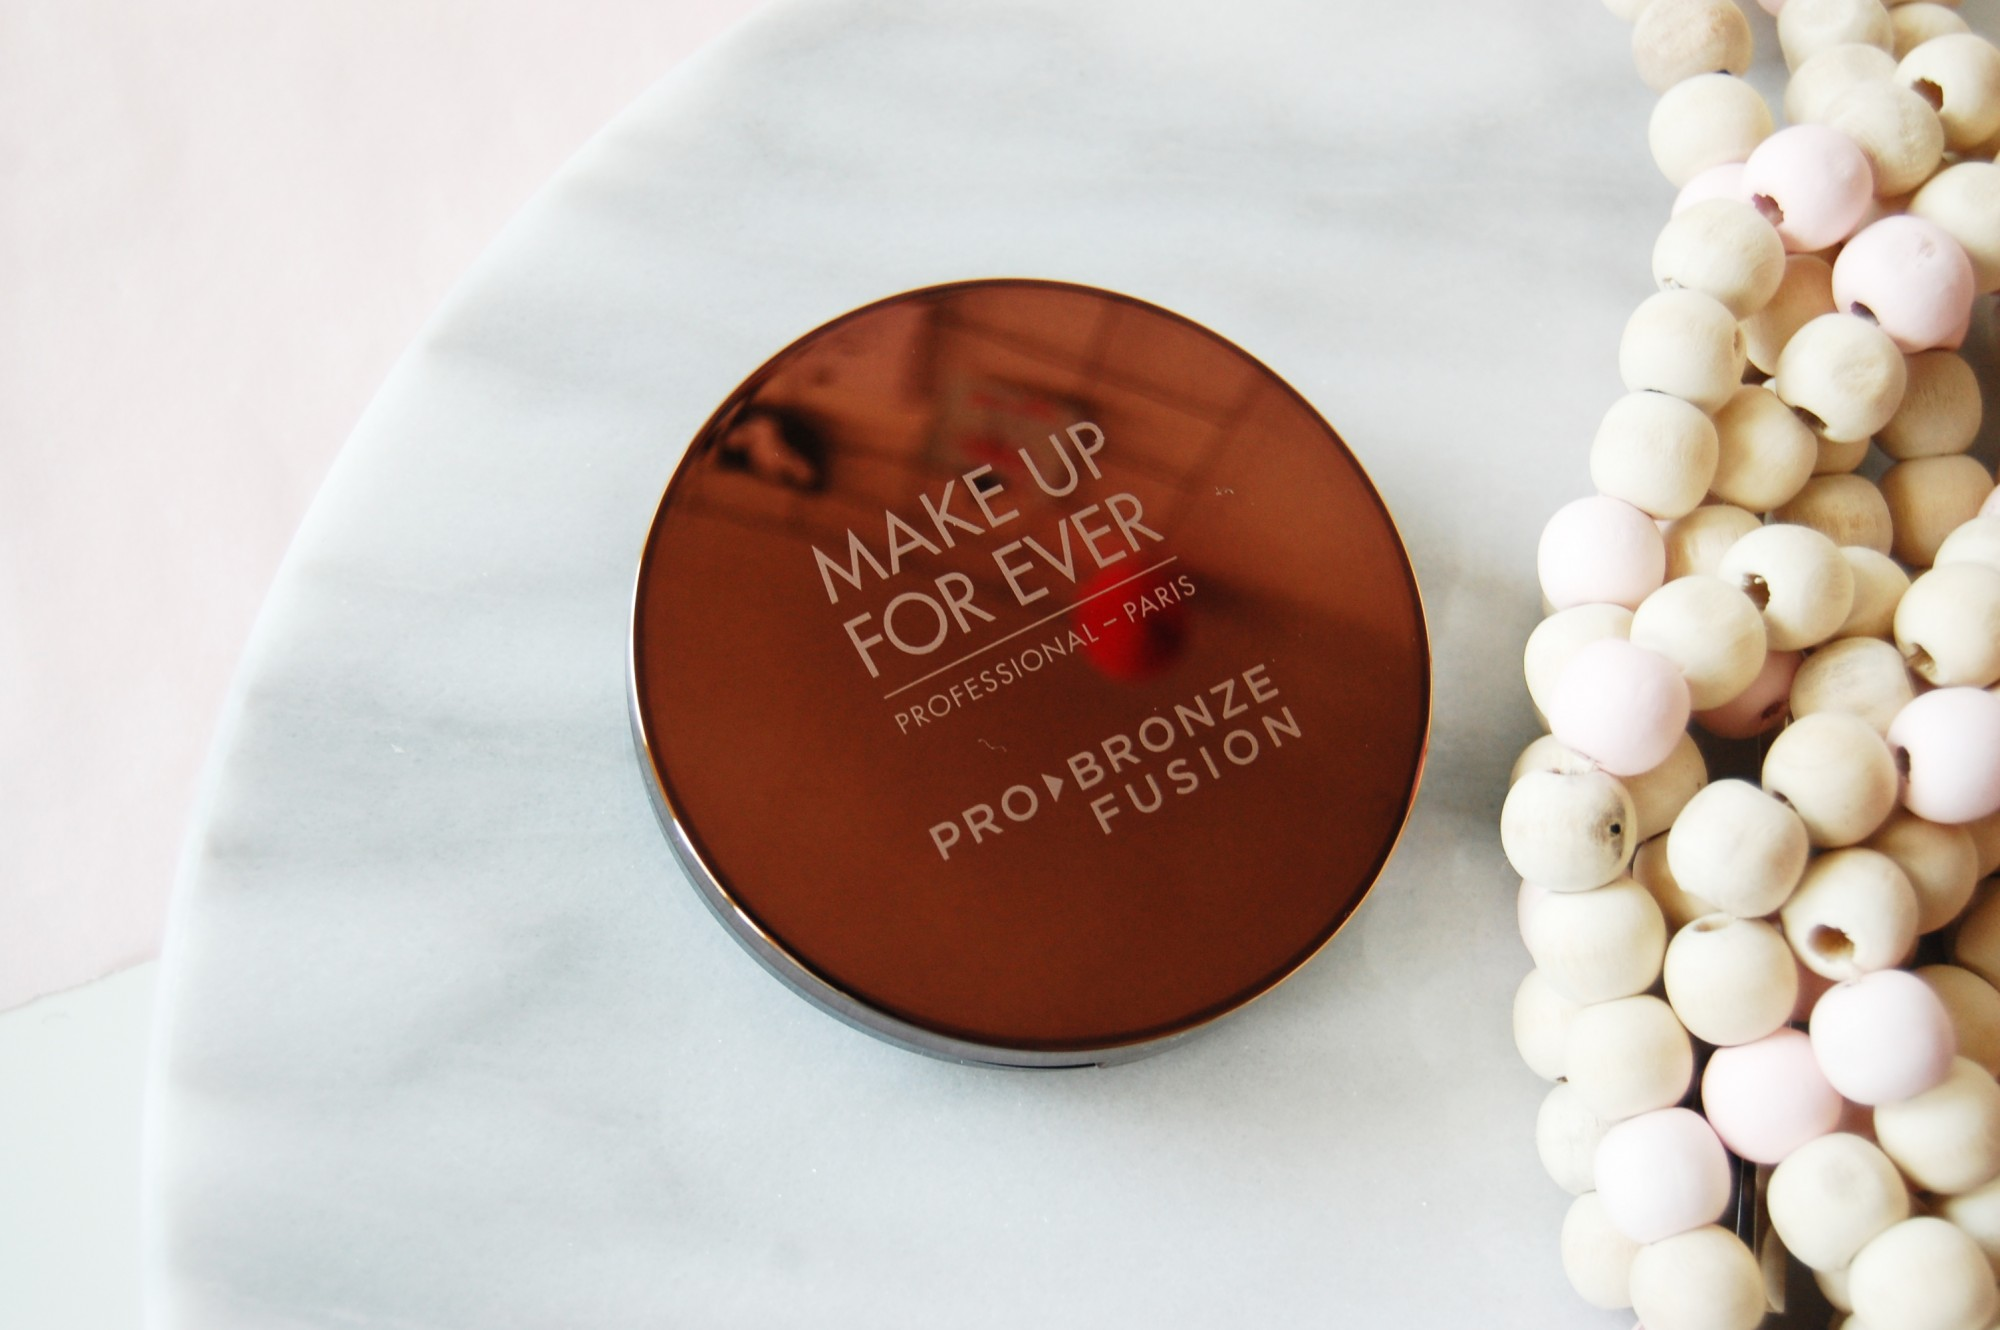 MAKE UP FOR EVER Pro Bronze Fusion